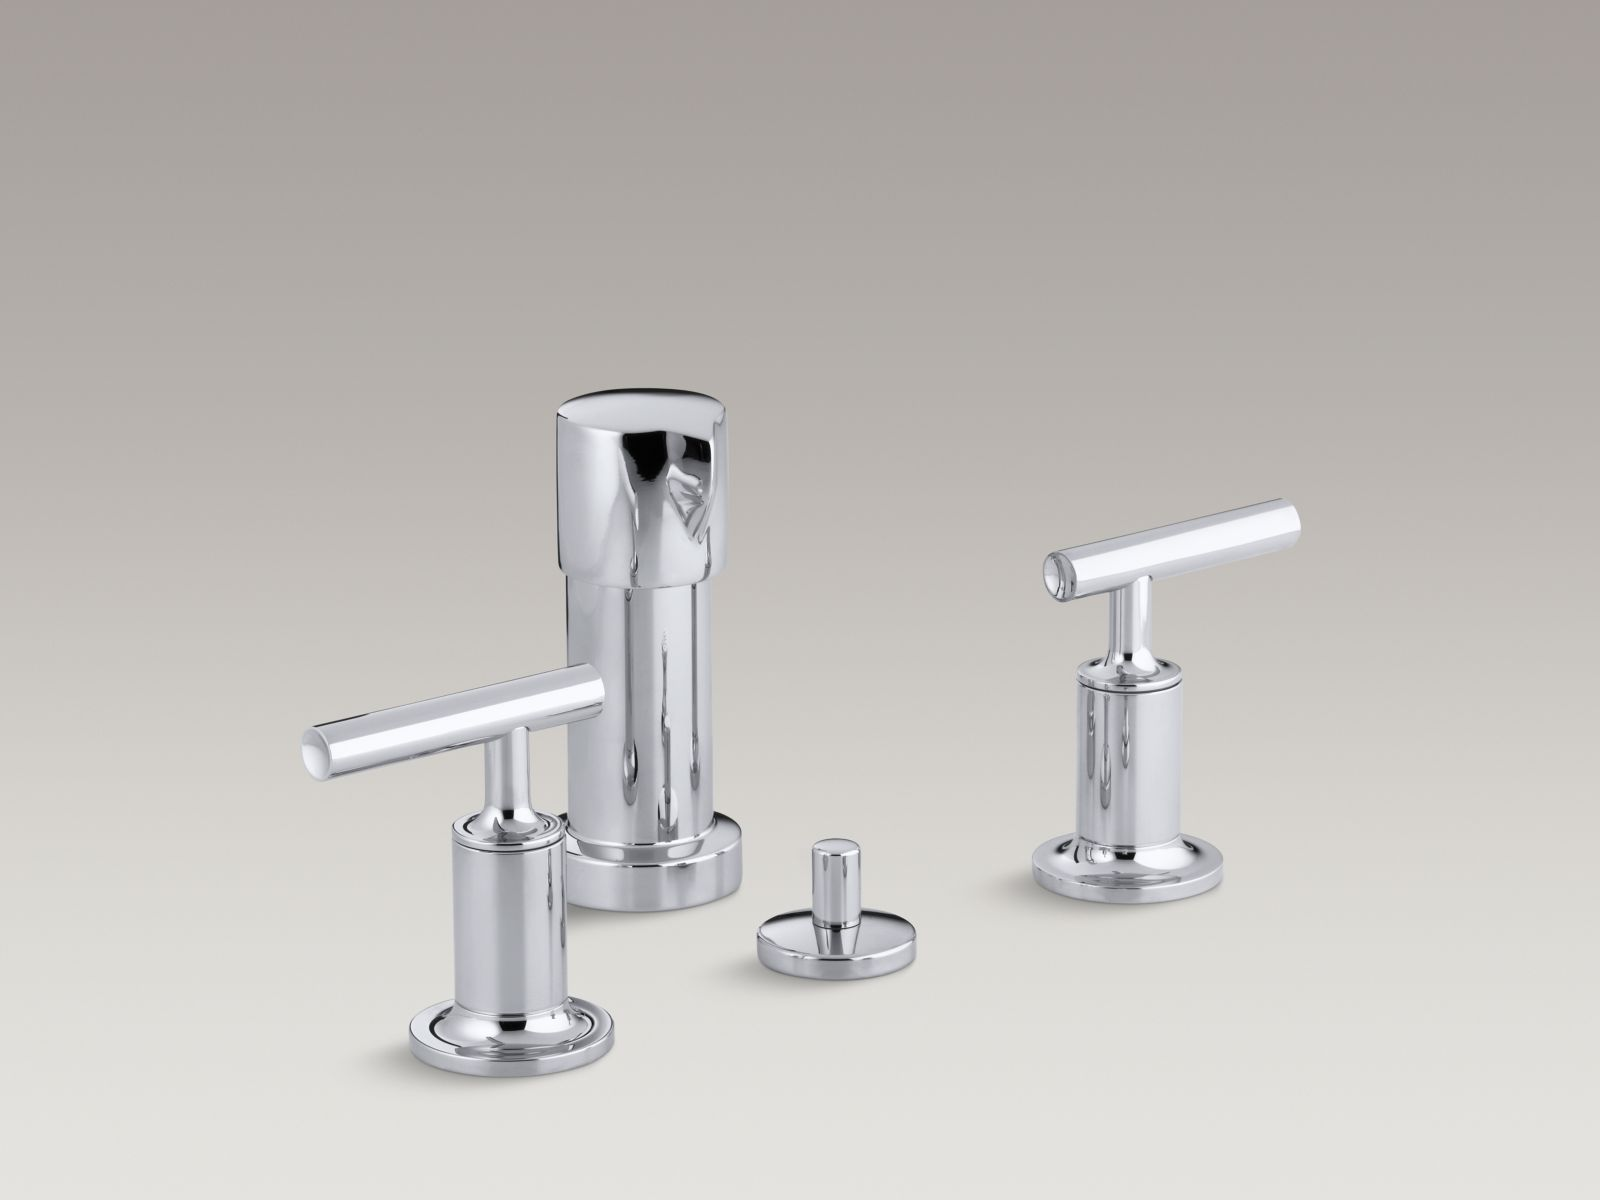 Kohler K-14431-4-CP Purist Vertical Spray Bidet Faucet with Lever Handles Polished Chrome